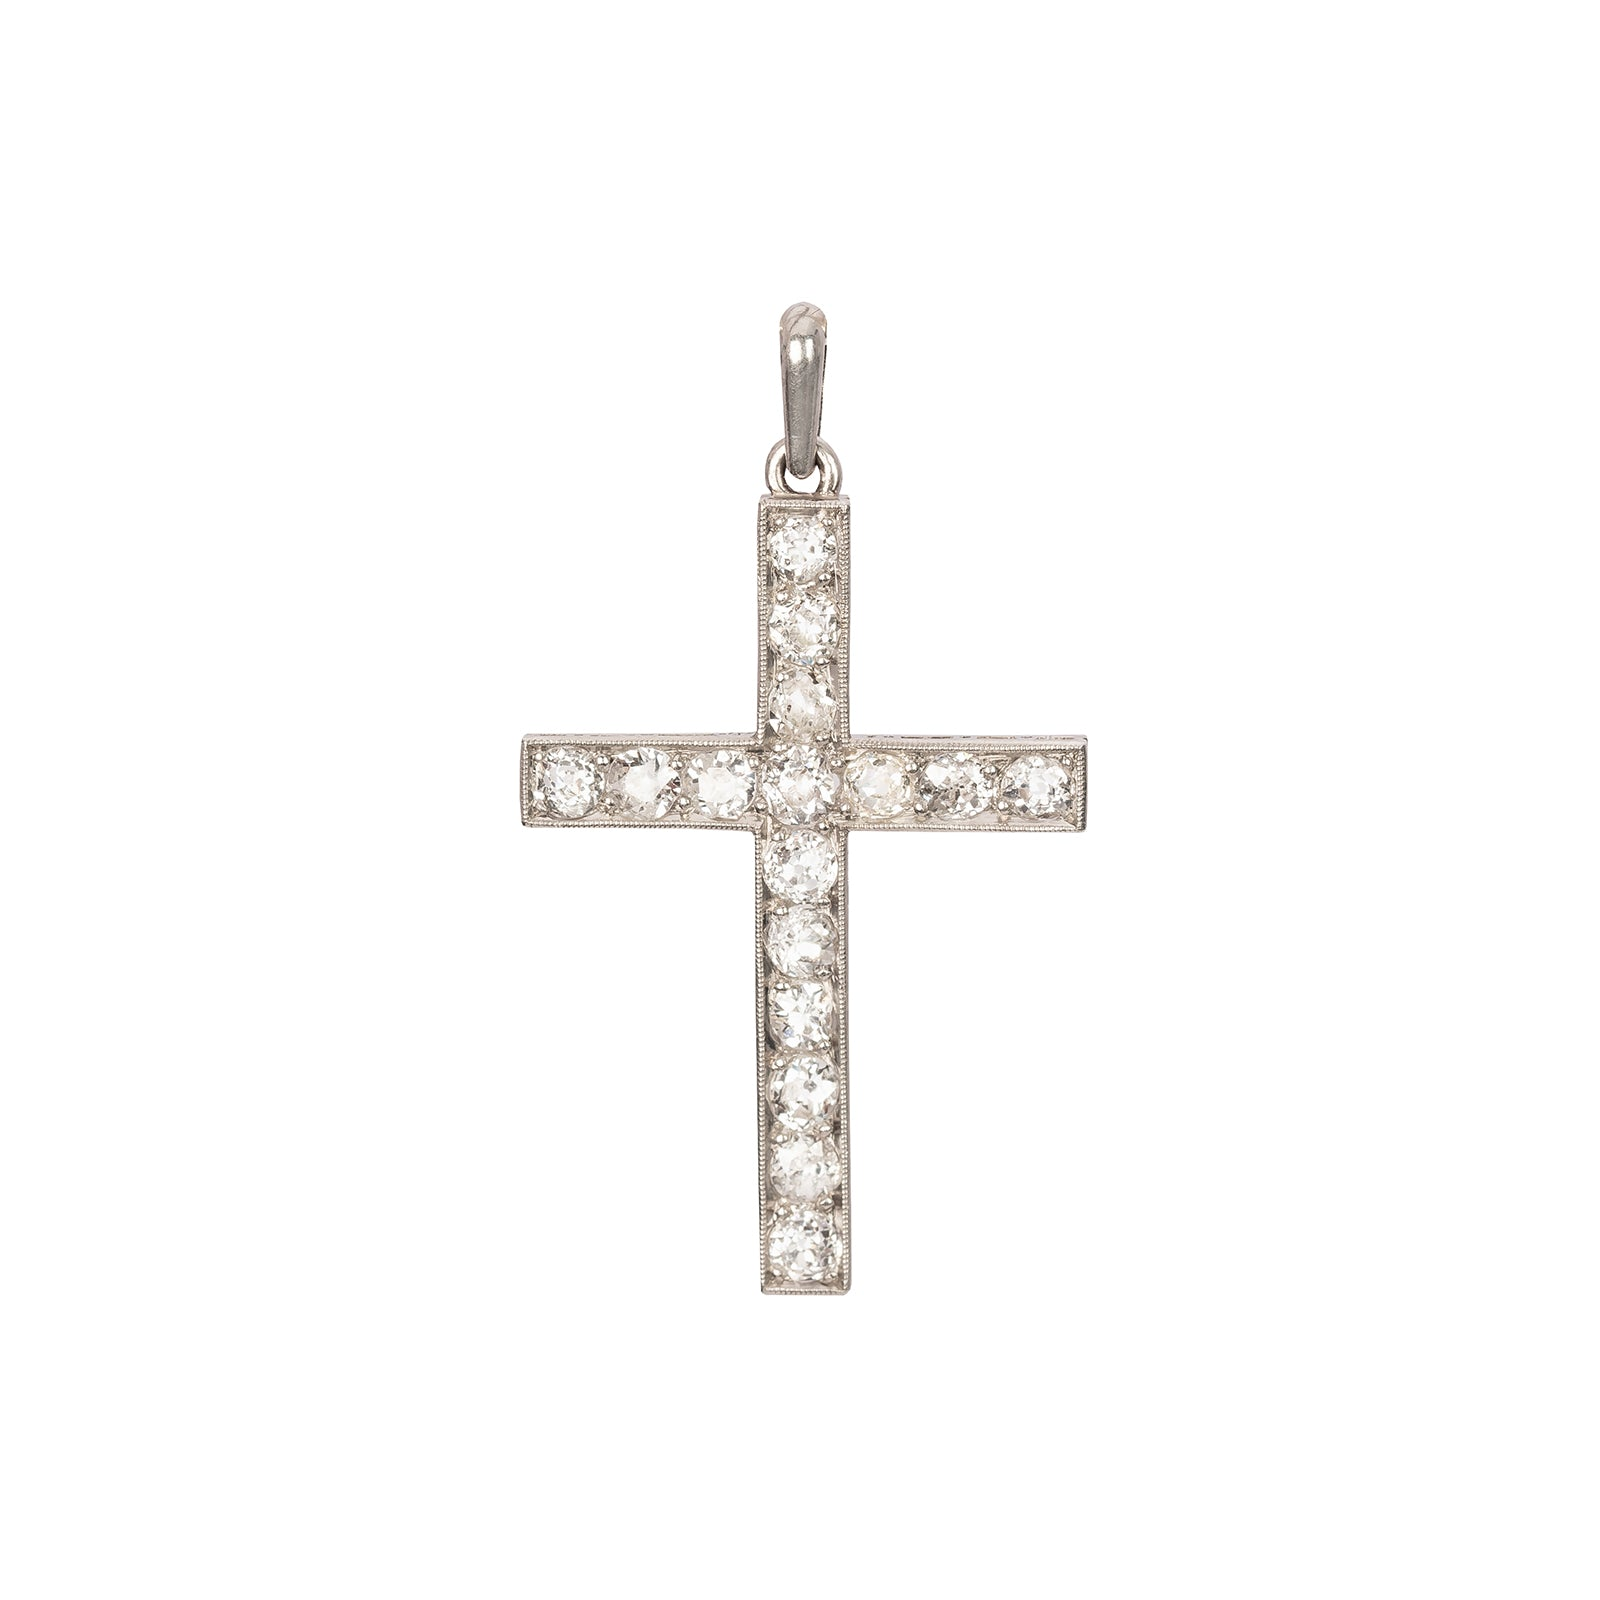 Antique & Vintage Jewelry Edwardian Platinum Diamond Cross Pendant - Charms & Pendants - Broken English Jewelry